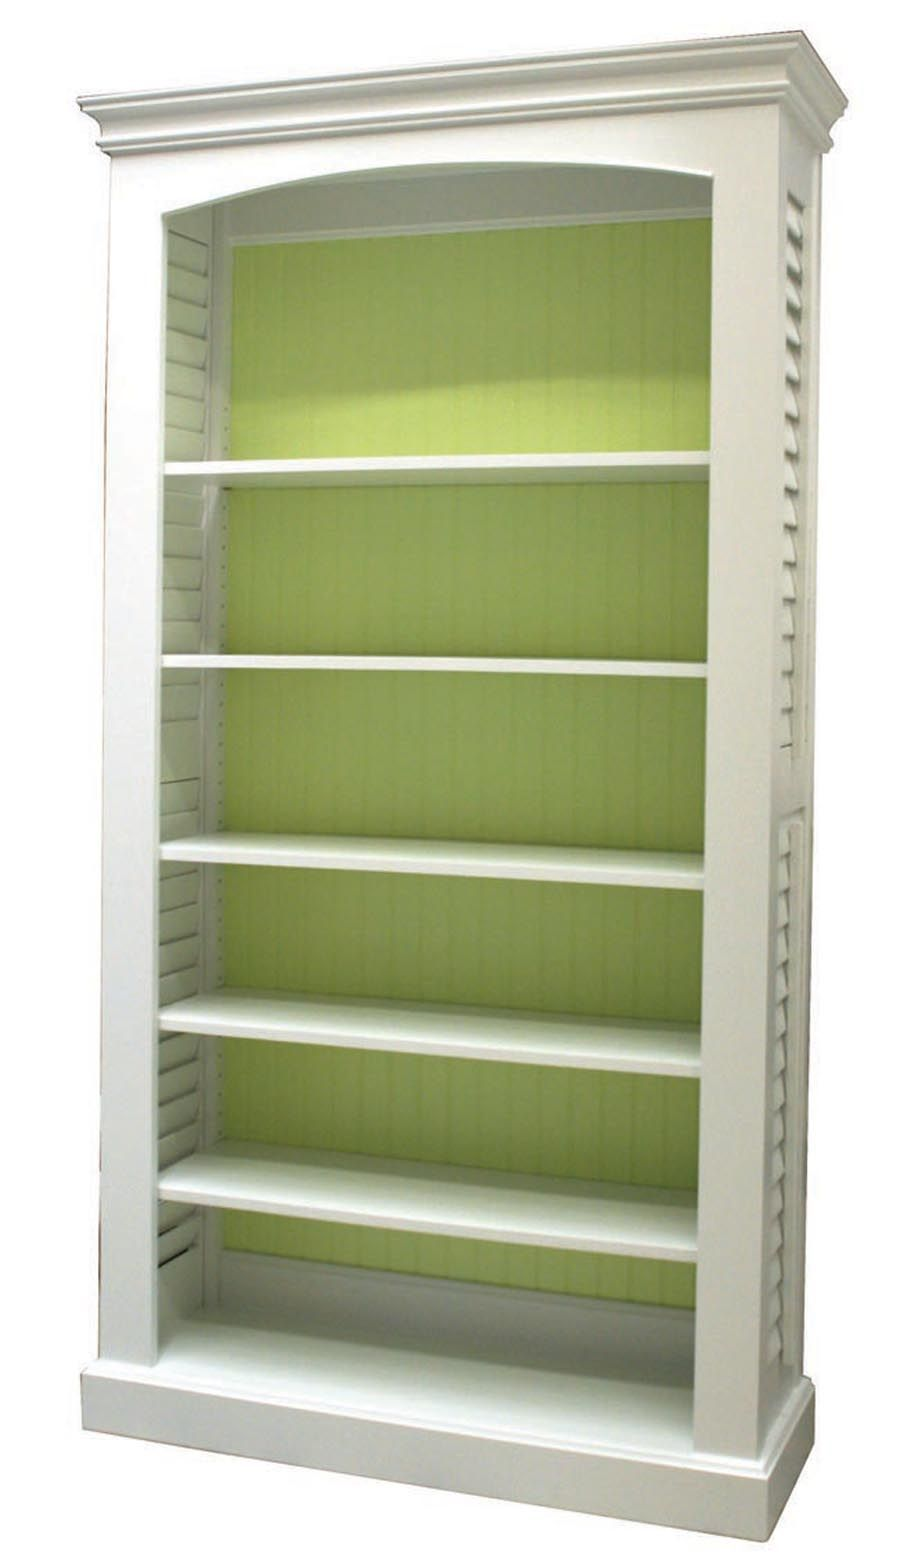 Blythewood Shuttered Bookcase Bookcases For Sale Bookcase Shutters